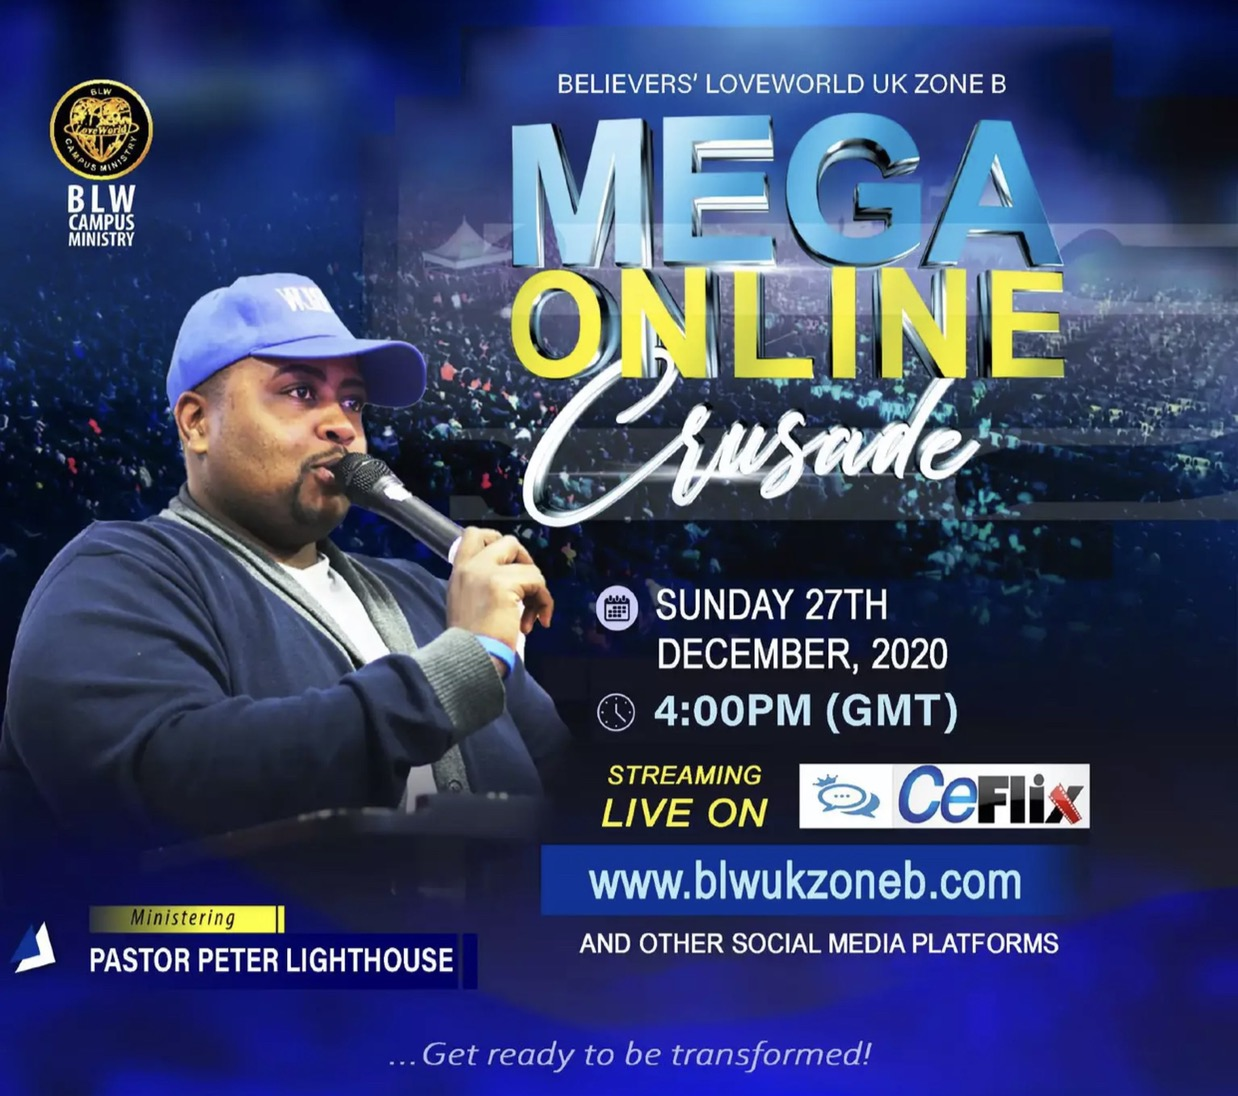 Millions will be reached. #MegaOnlineCrusades